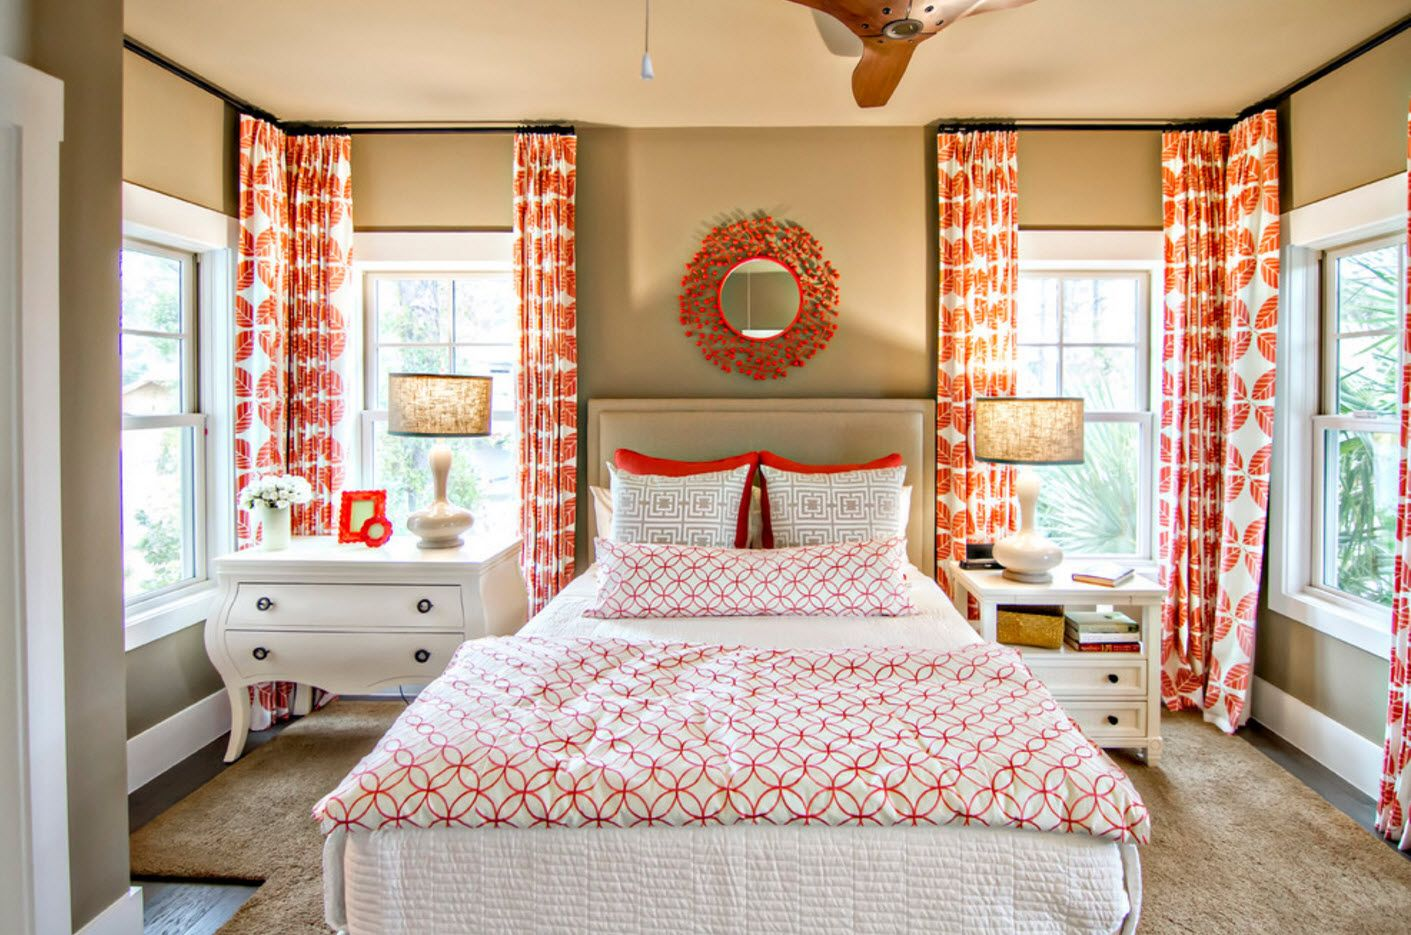 Red notes in the mirror and drapes of the modern bedroom